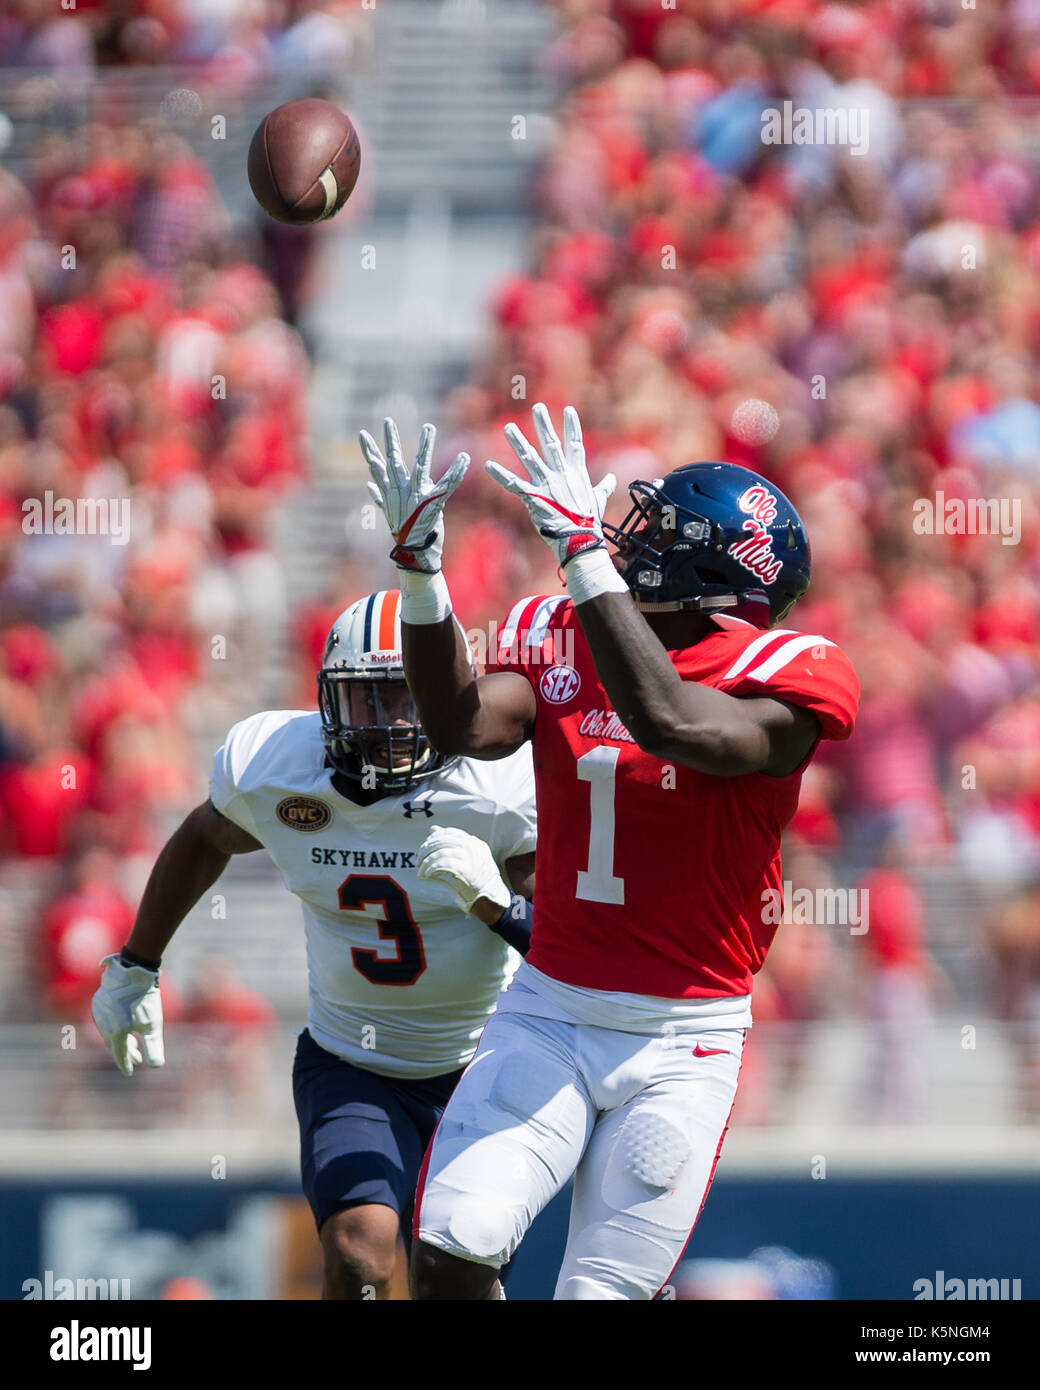 Oxford, USA.  9th Sept 2017. University of Mississippi Wide Receiver A.J. Brown (1) waits to catch the pass from Quarterback Shea Patterson (20) as University of Tennesse-Martin Safety Tae Martin (3) gives chase during the first quarter at Vaught-Hemingway Stadium in Oxford, Mississippi,  on Saturday, September 9, 2107.  Credit: Kevin Williams/Alamy Live News. - Stock Image